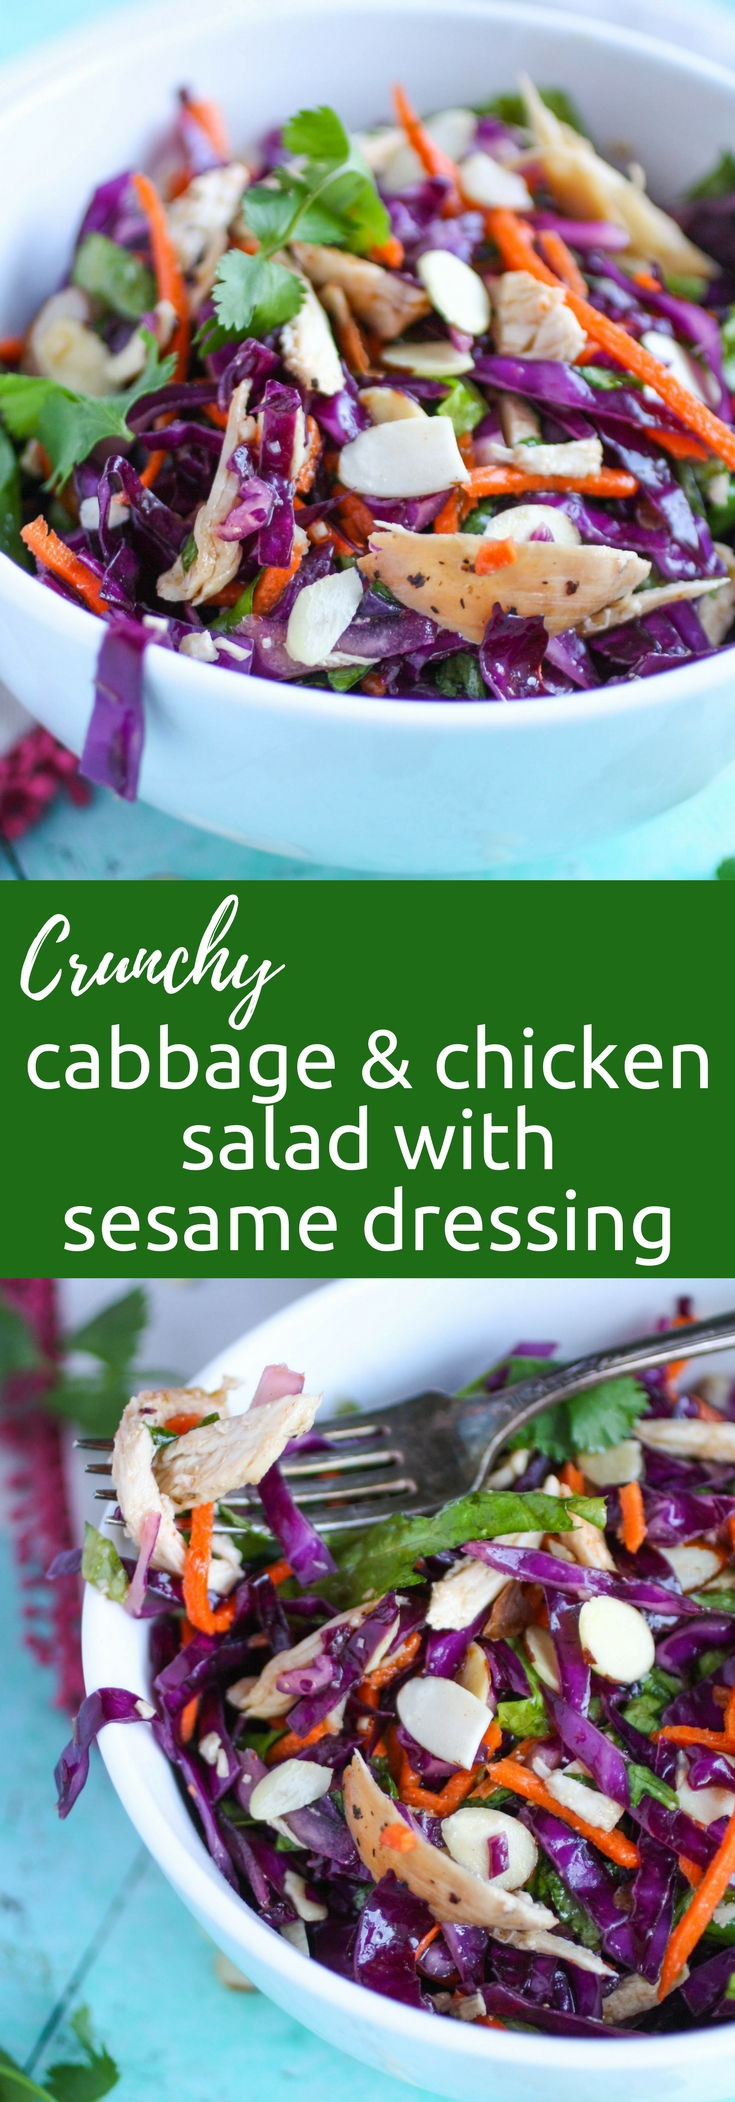 Crunchy Cabbage & Chicken Salad with Sesame Dressing is a salad to skin your teeth into. This crunchy cabbage salad is a delight in color and flavor!